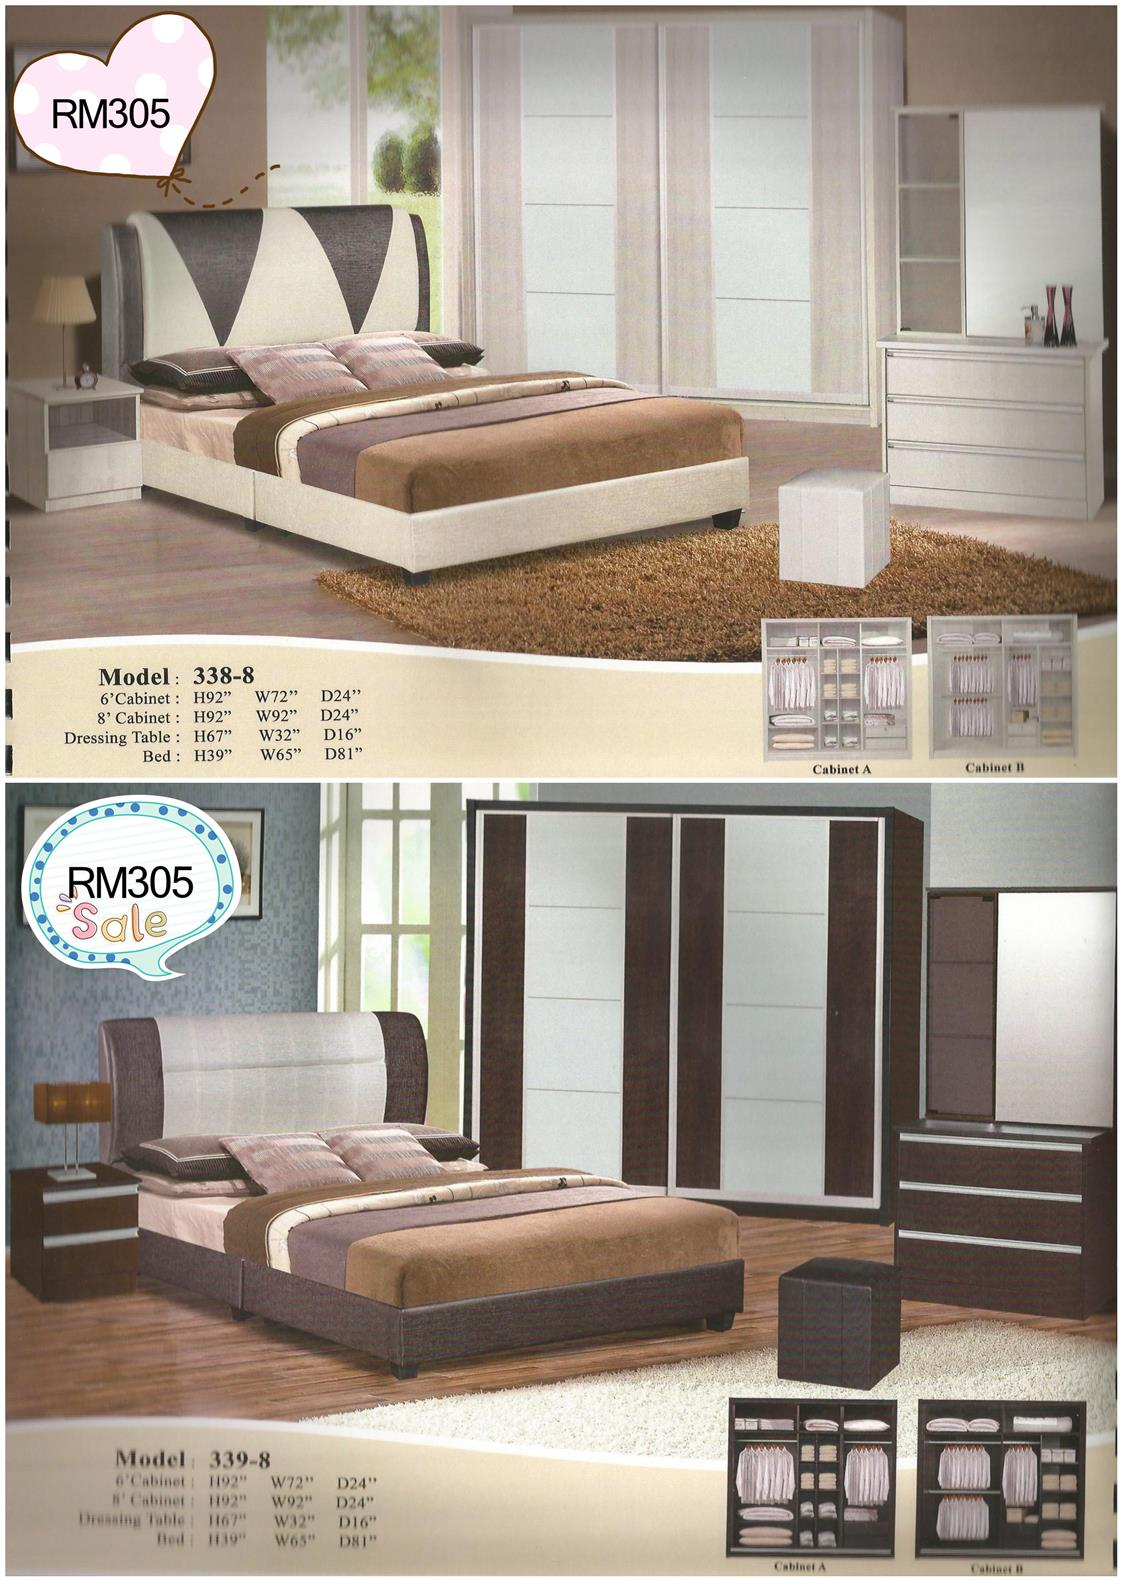 Low installment plan payment permont end 3 15 2017 2 15 pm for Bedroom furniture pay monthly